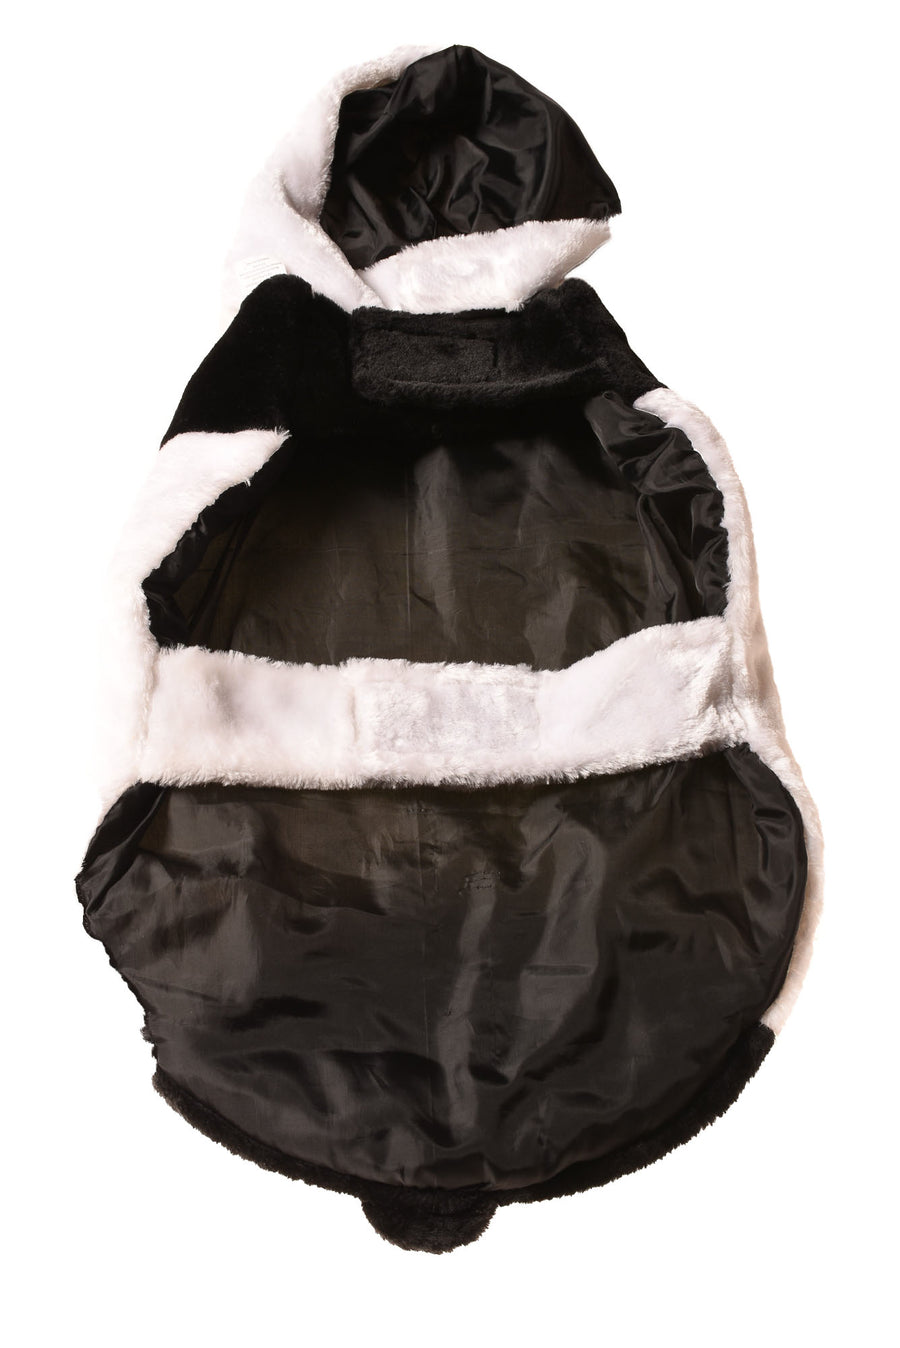 NEW No Brand Dog Coat Large Black & White